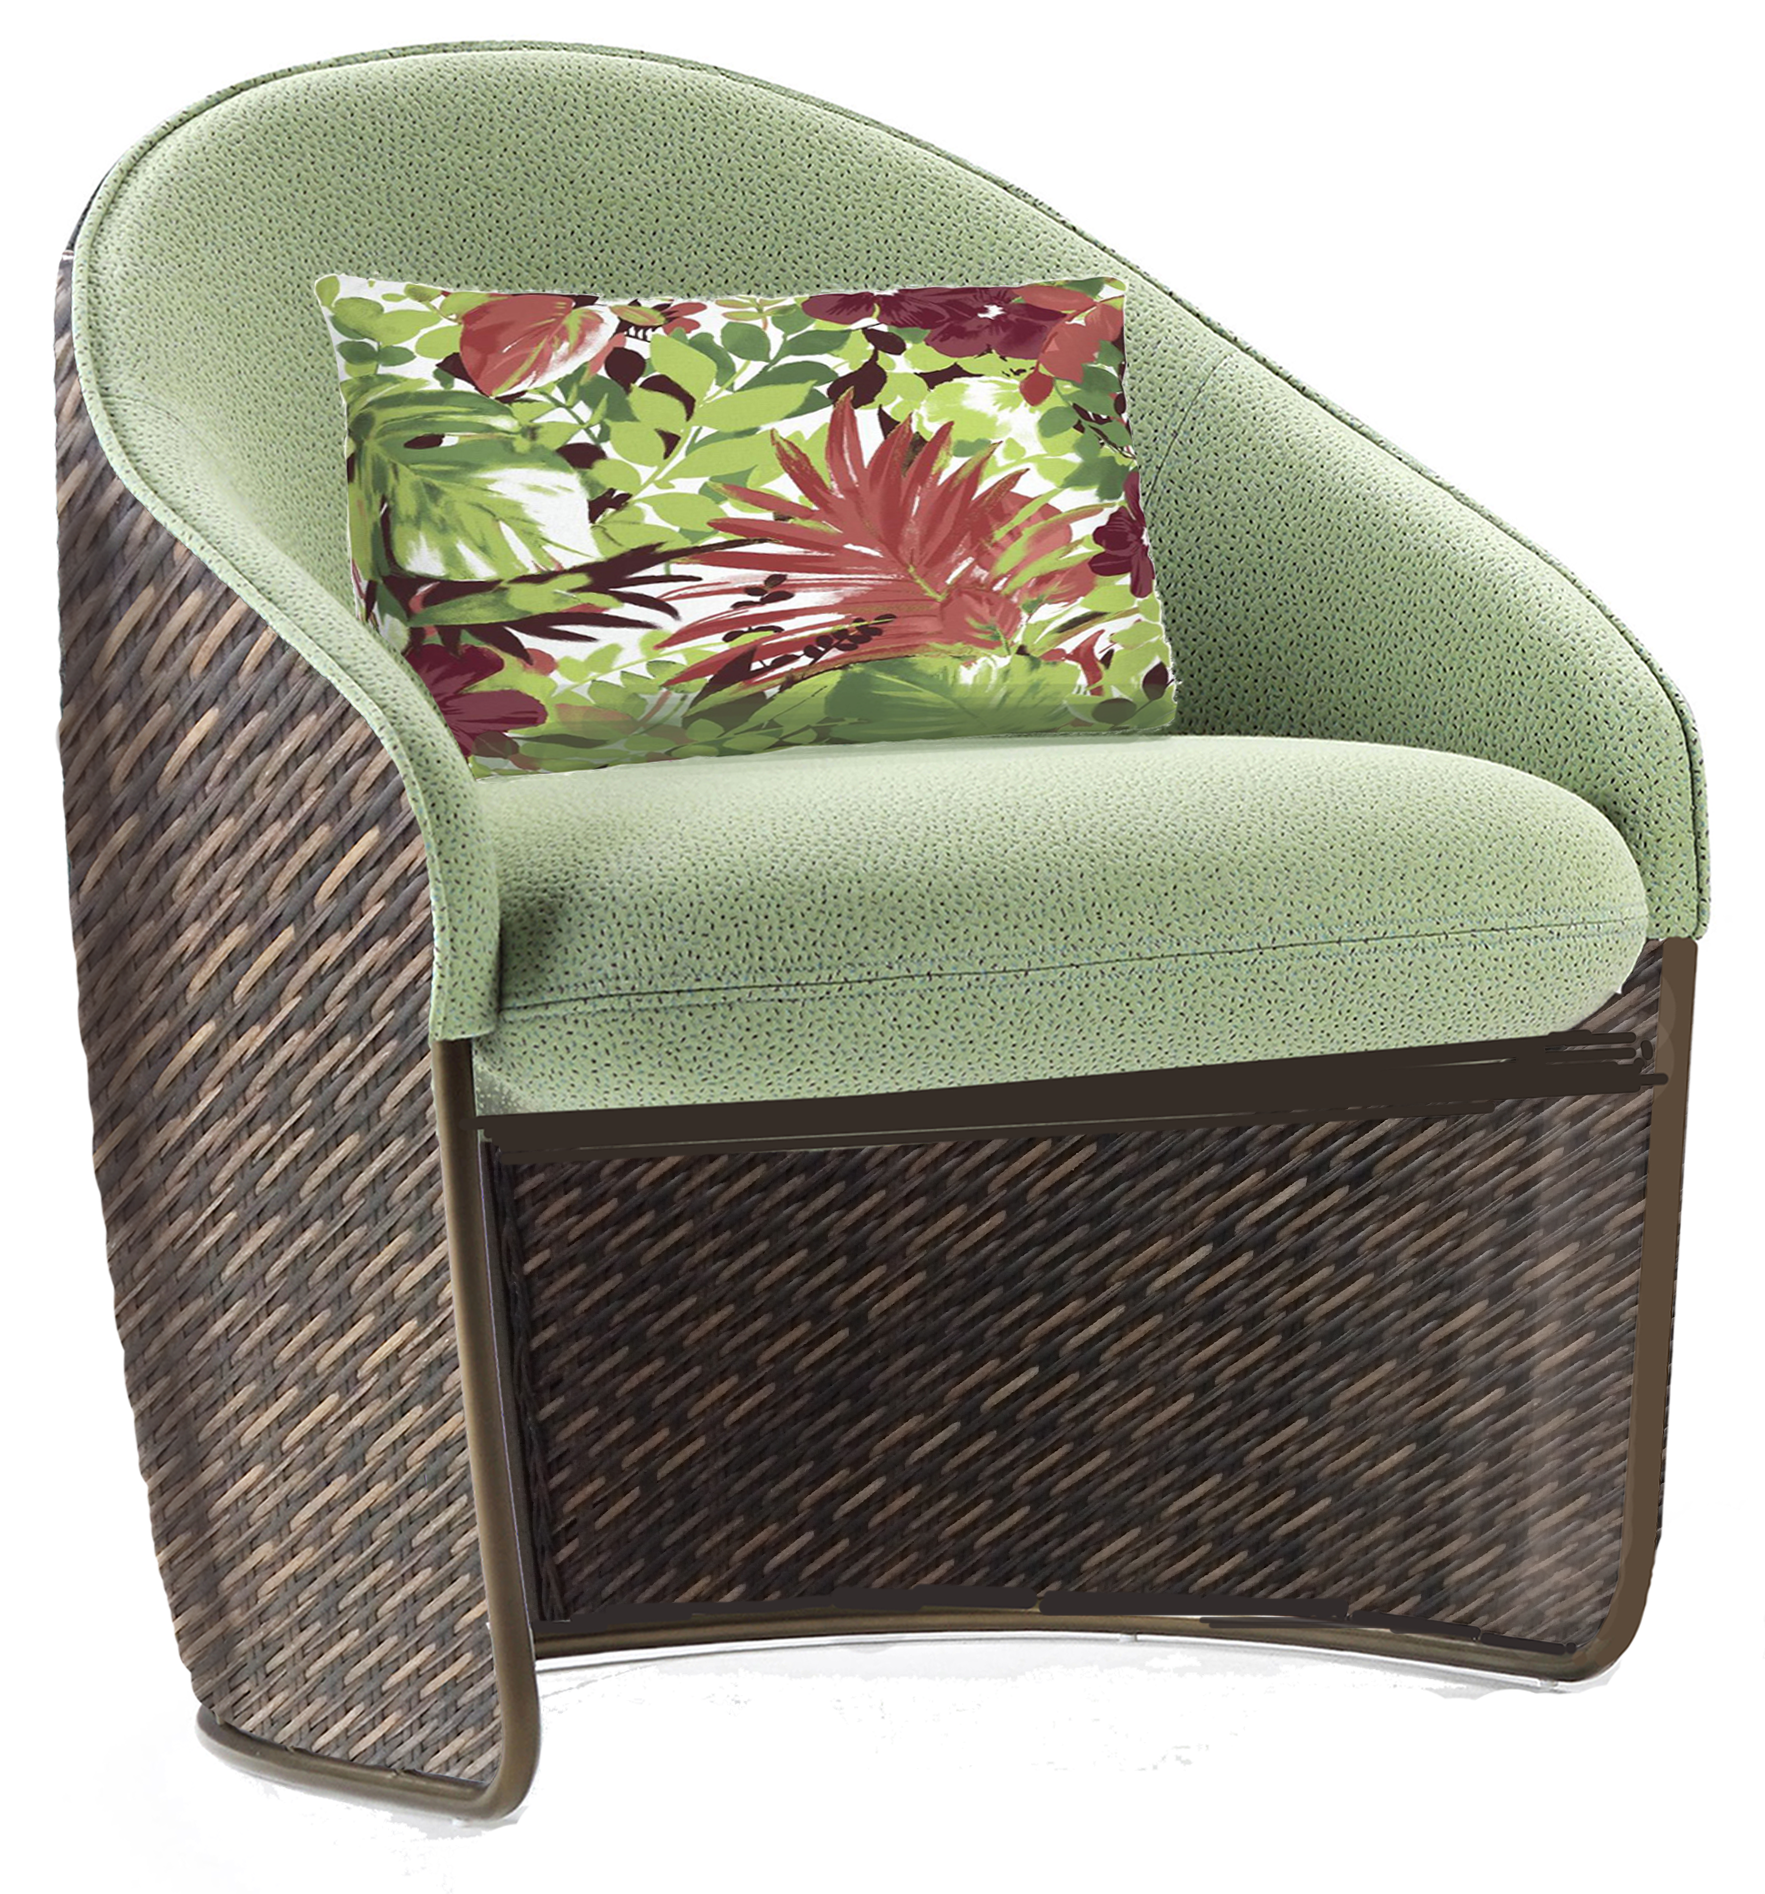 Barkley Sierra Mixed Wicker Dining Chair